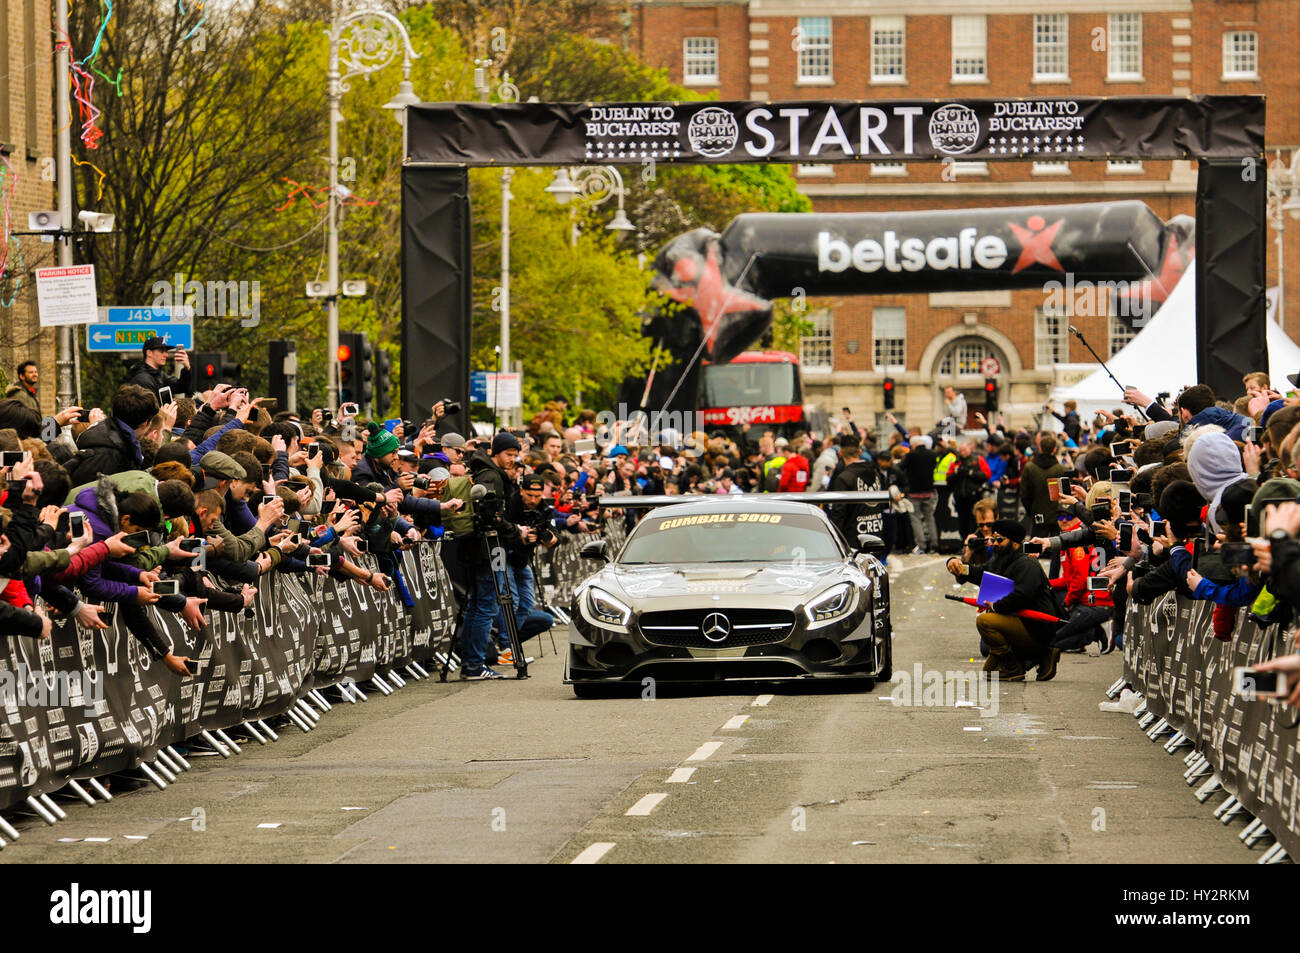 DUBLIN, IRELAND. MAY 01 2016 - A Mercedes SL Black Edition roars off from Dublin on the first leg of the Gumball - Stock Image